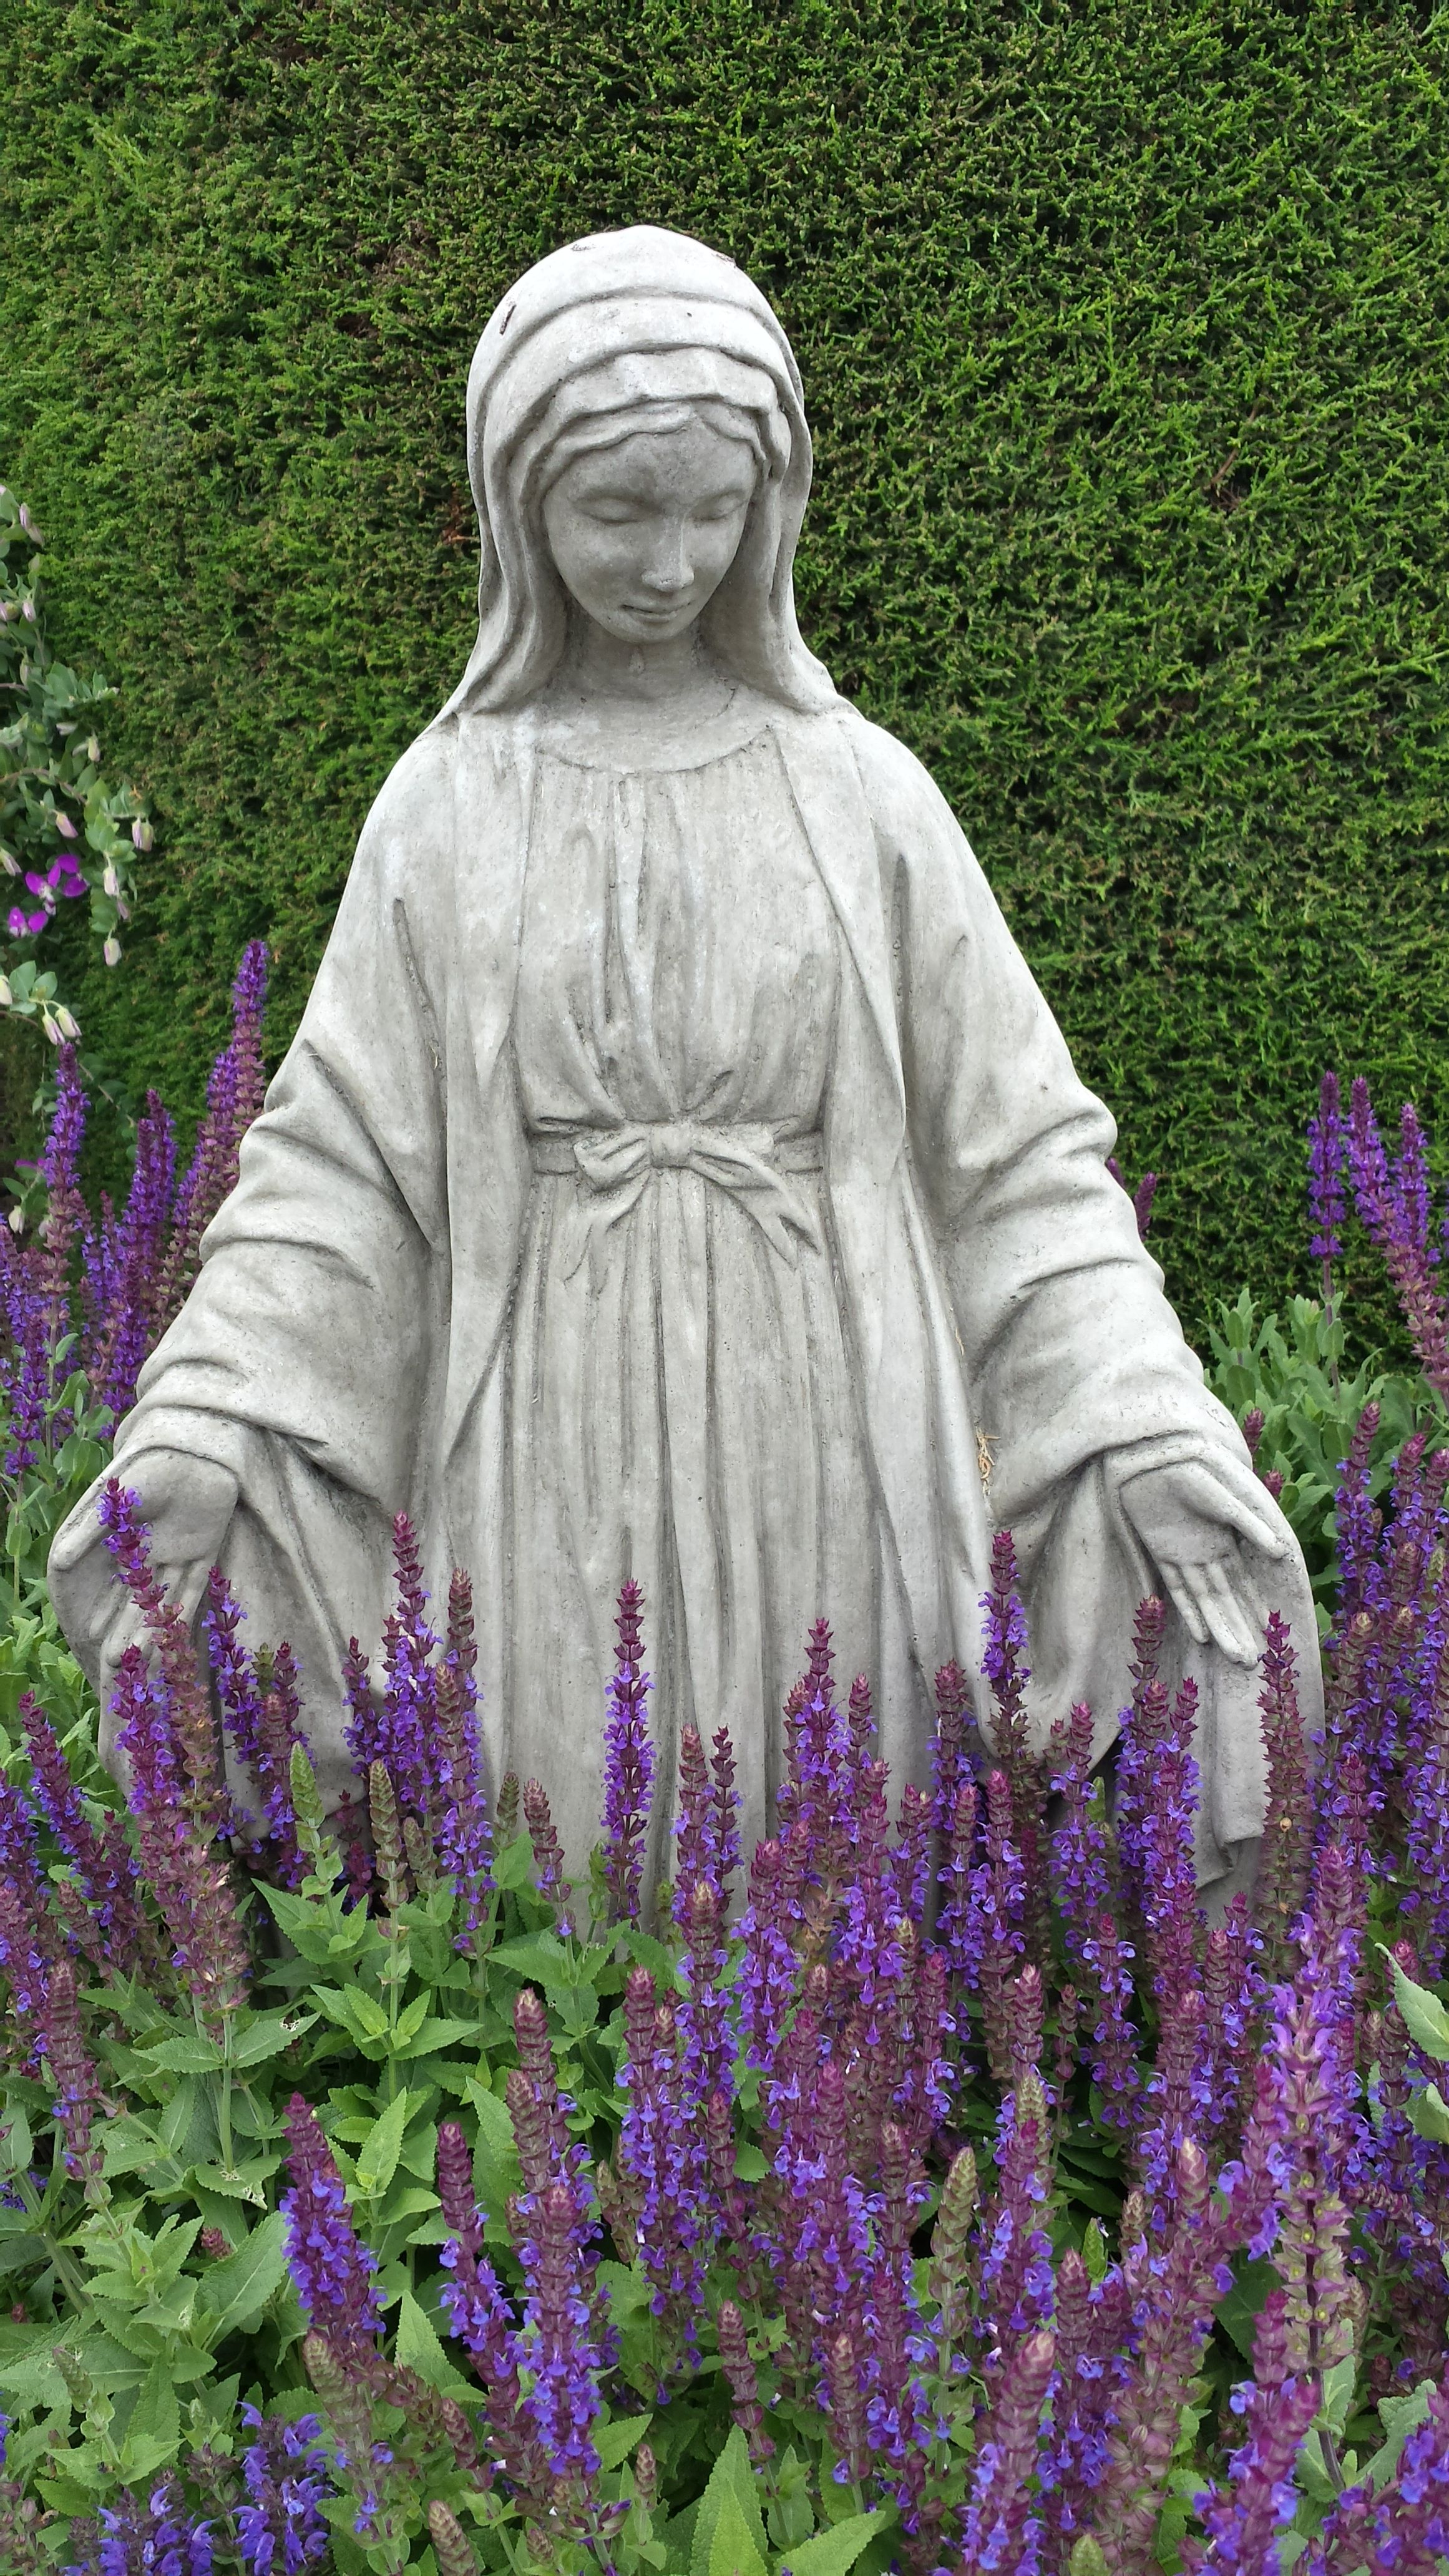 Charming Virgin Mary Statue Surrounded By Lavender. Found This At Rogeru0027s Garden,  Newport Beach.